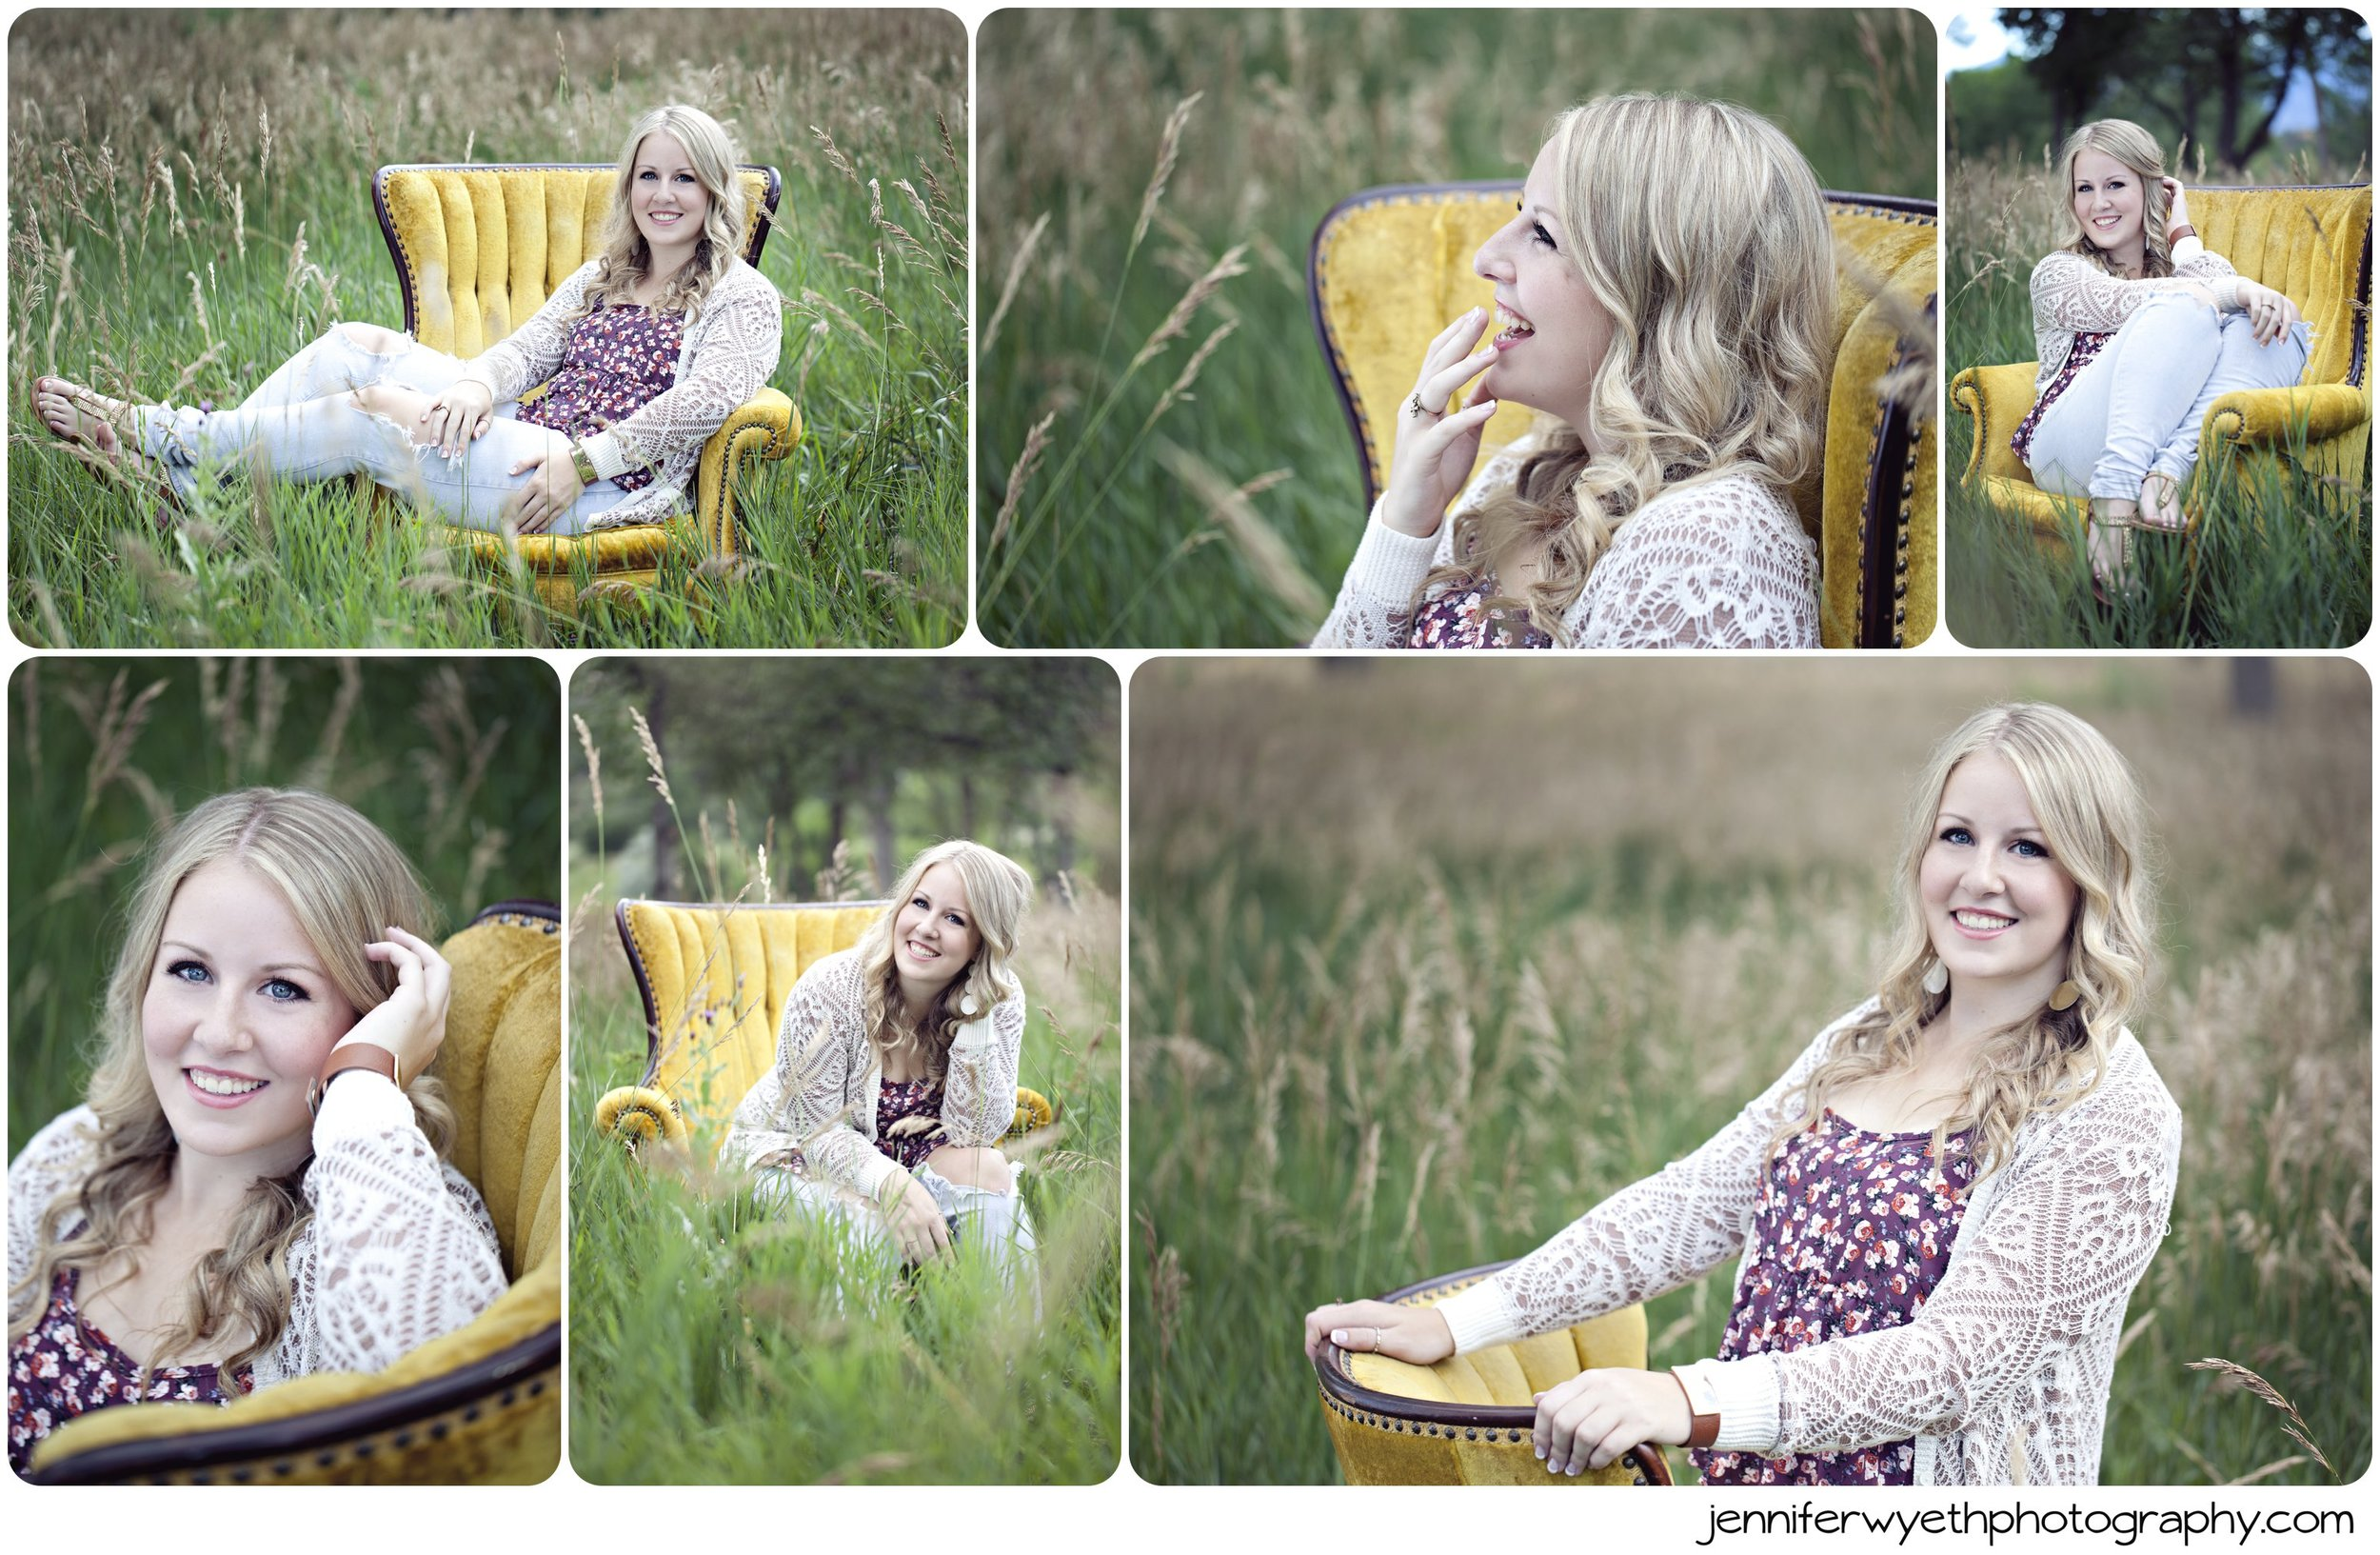 blond senior in sweater plays around on yellow winged back chair in field